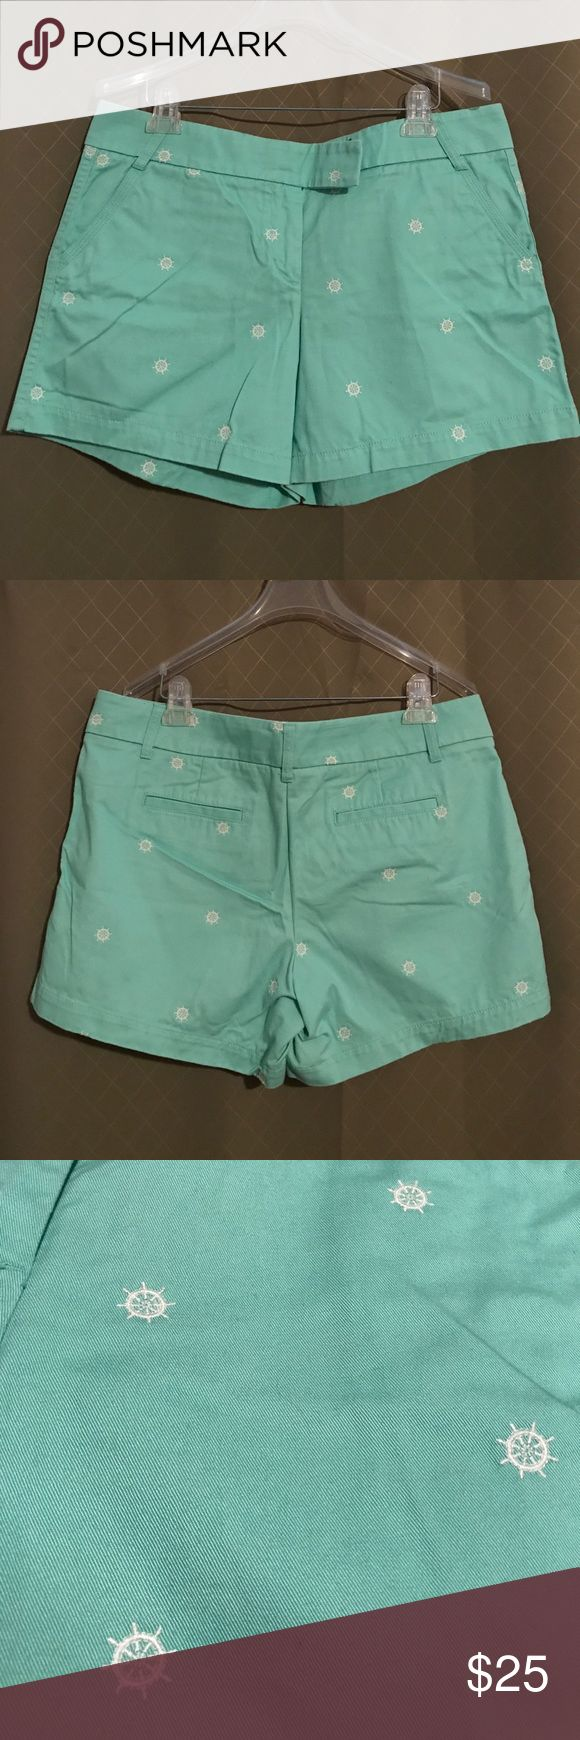 J. Crew Factory Seafoam Green Shorts Worn over 1 summer, still in very good condition, pilling in the crotch area (as pictured). 100% Cotton Broken-In Chinos with embroidered boat steering wheels. Inseam measures about 5 inches and the length is about 14 inches. J. Crew Factory Shorts